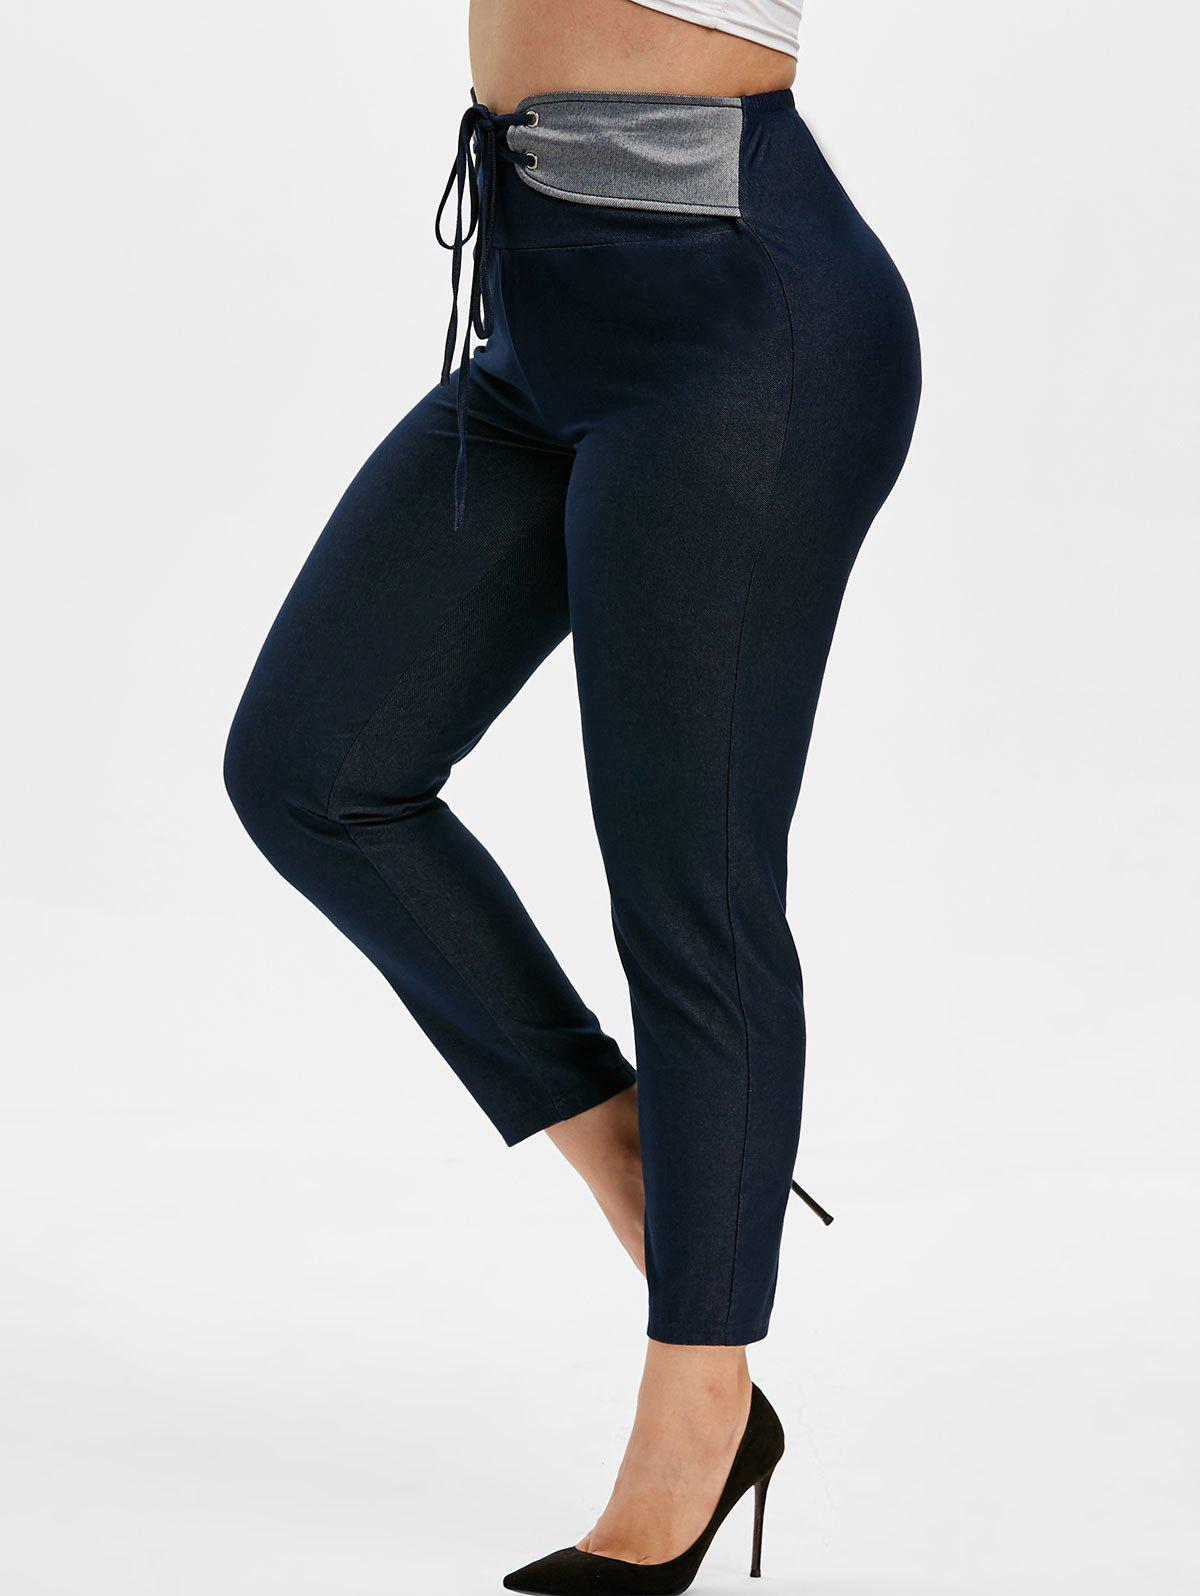 New Plus Size High Rise Lace Up Leggings